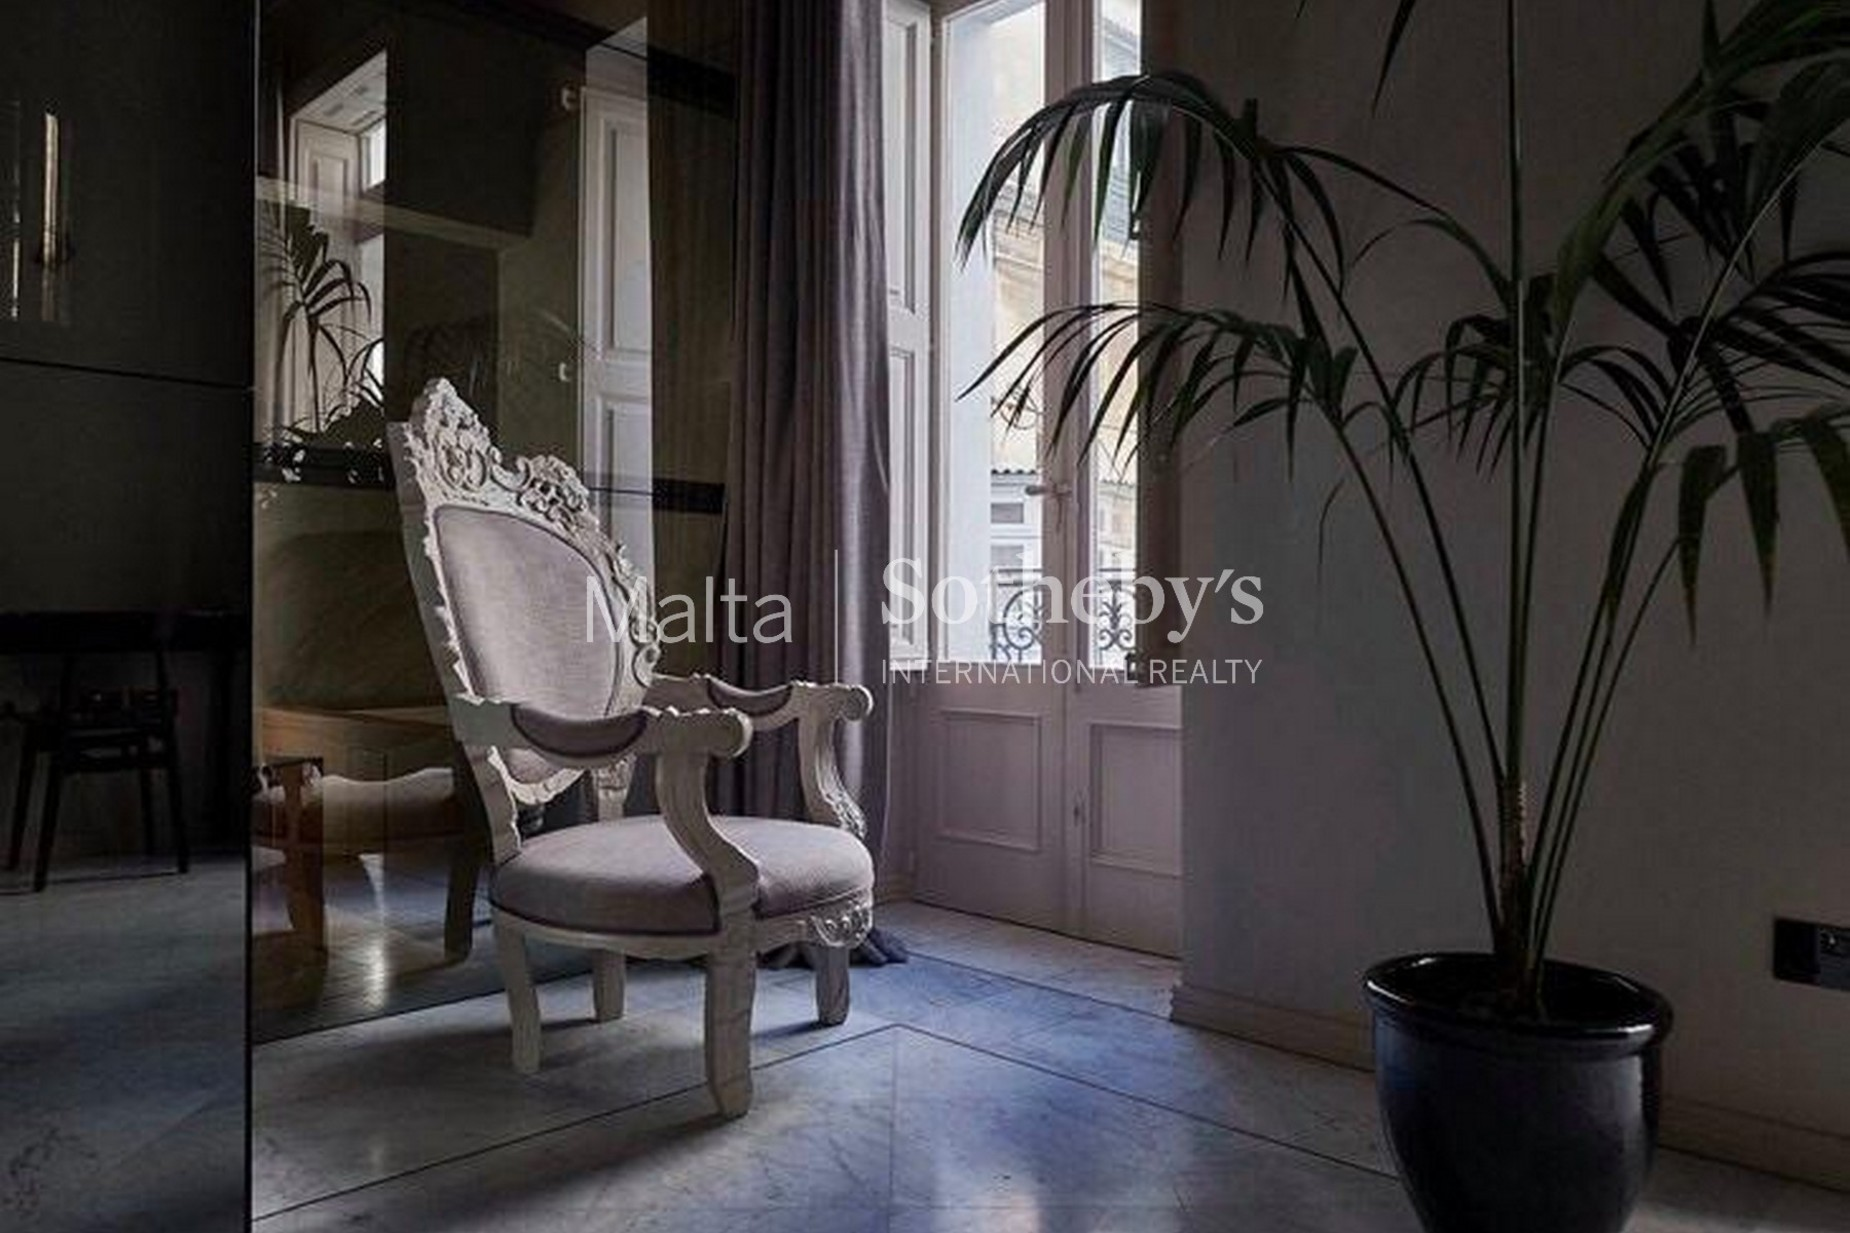 1 bed Apartment For Rent in Valletta, Valletta - thumb 6